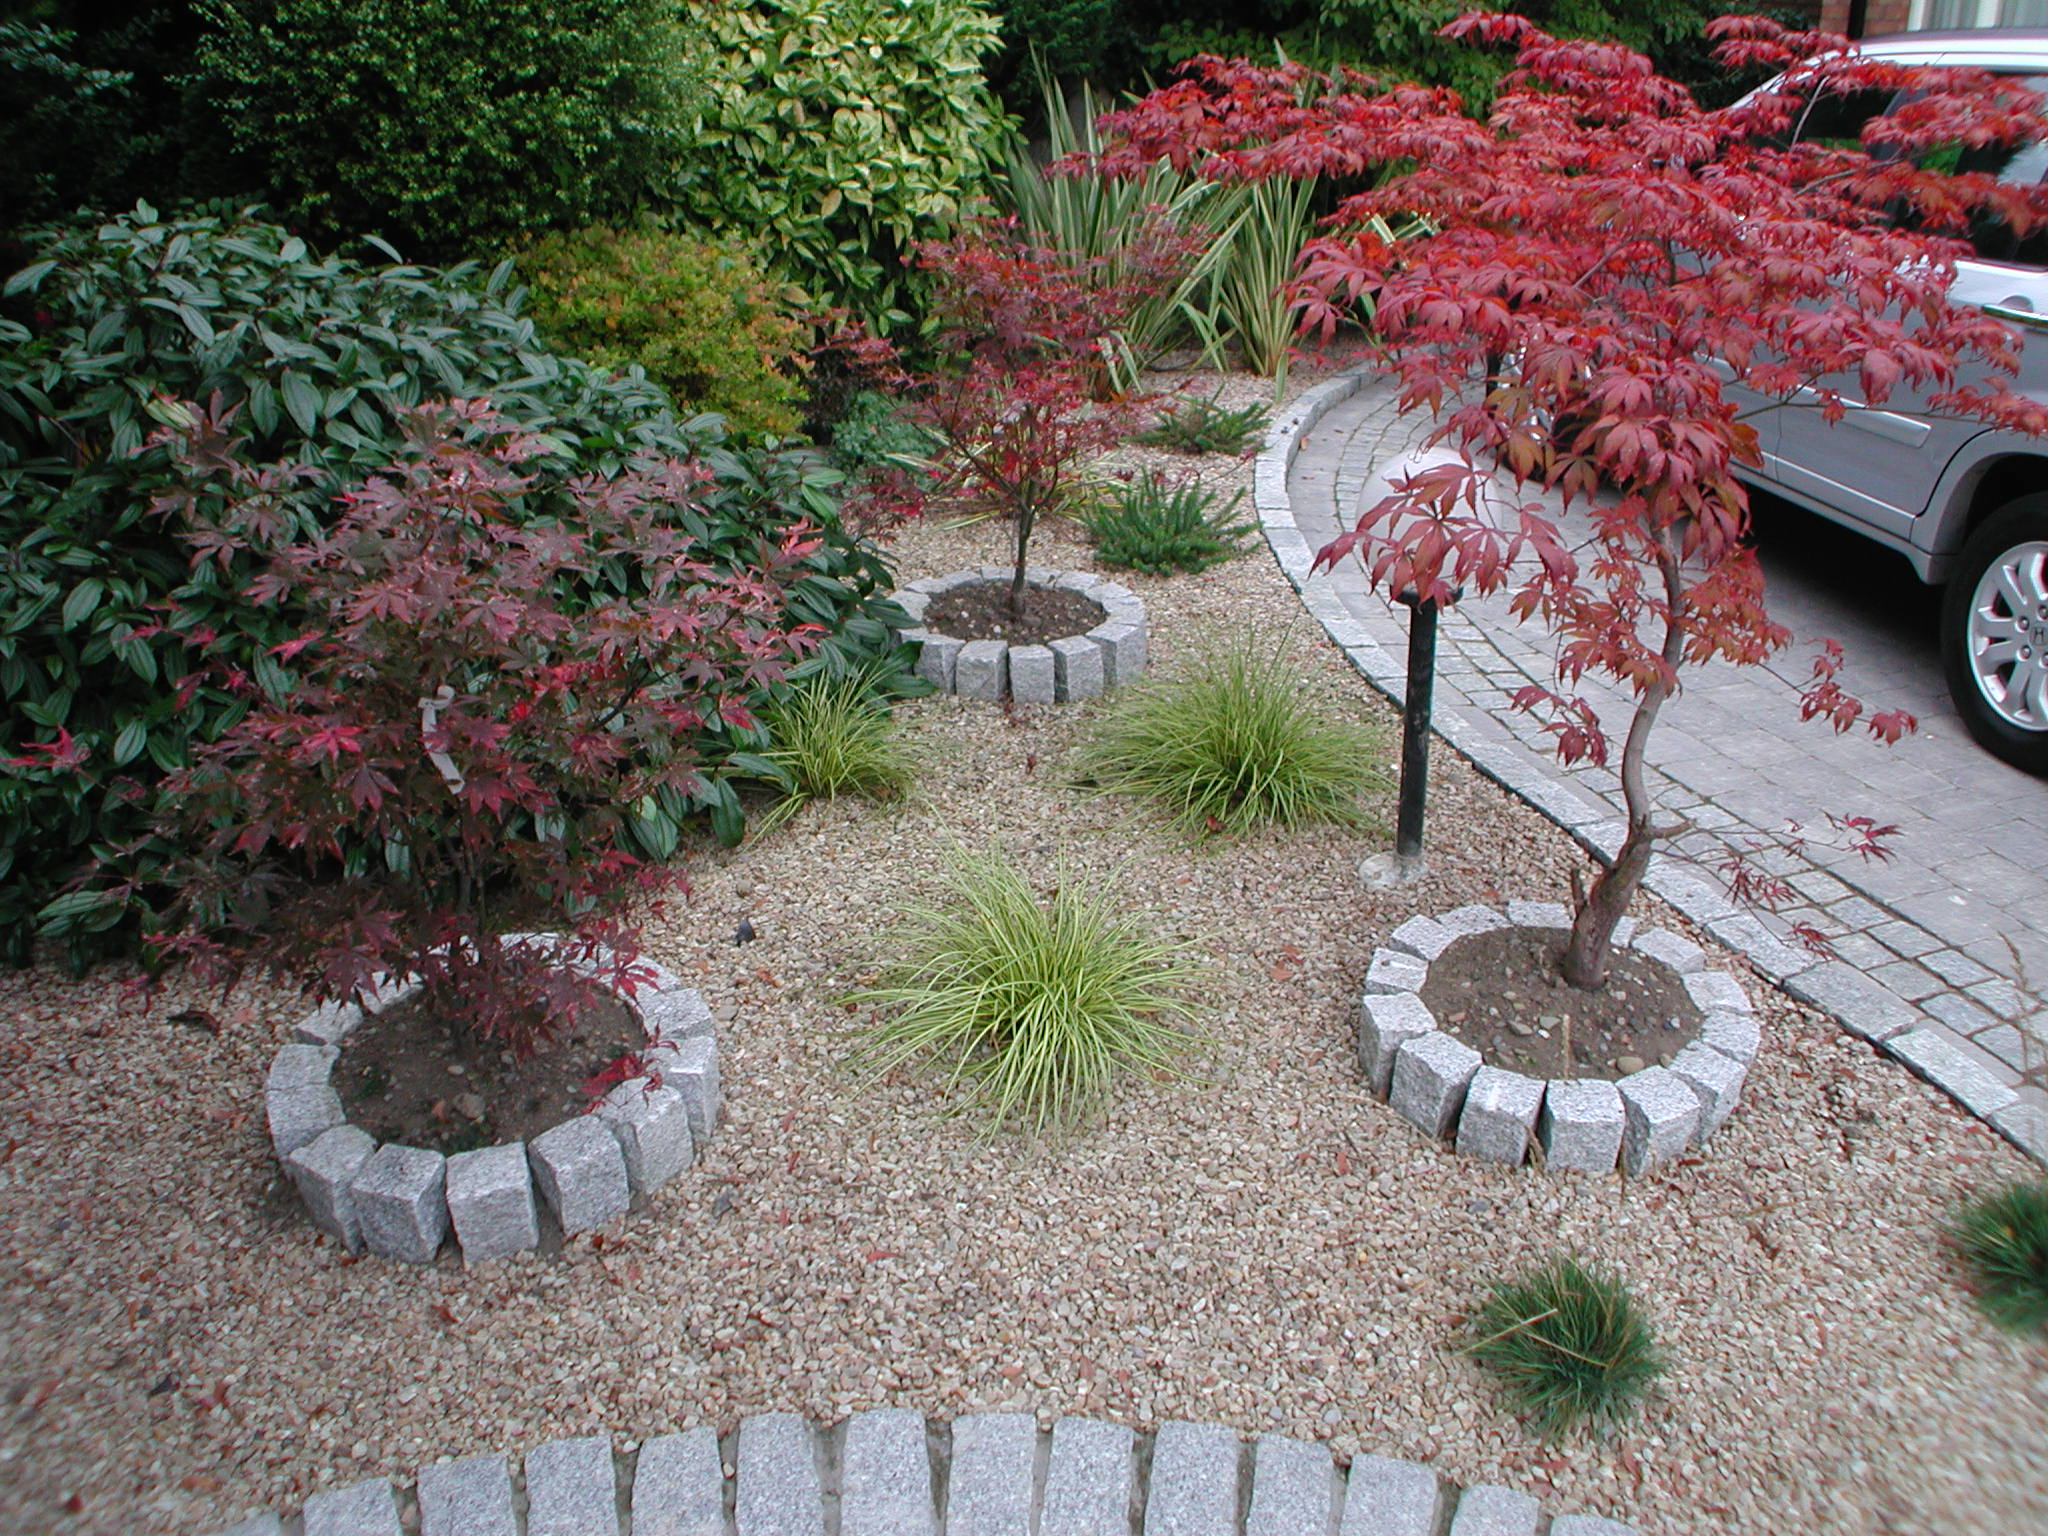 Low maintenance garden design dublin for Low maintenance lawn design